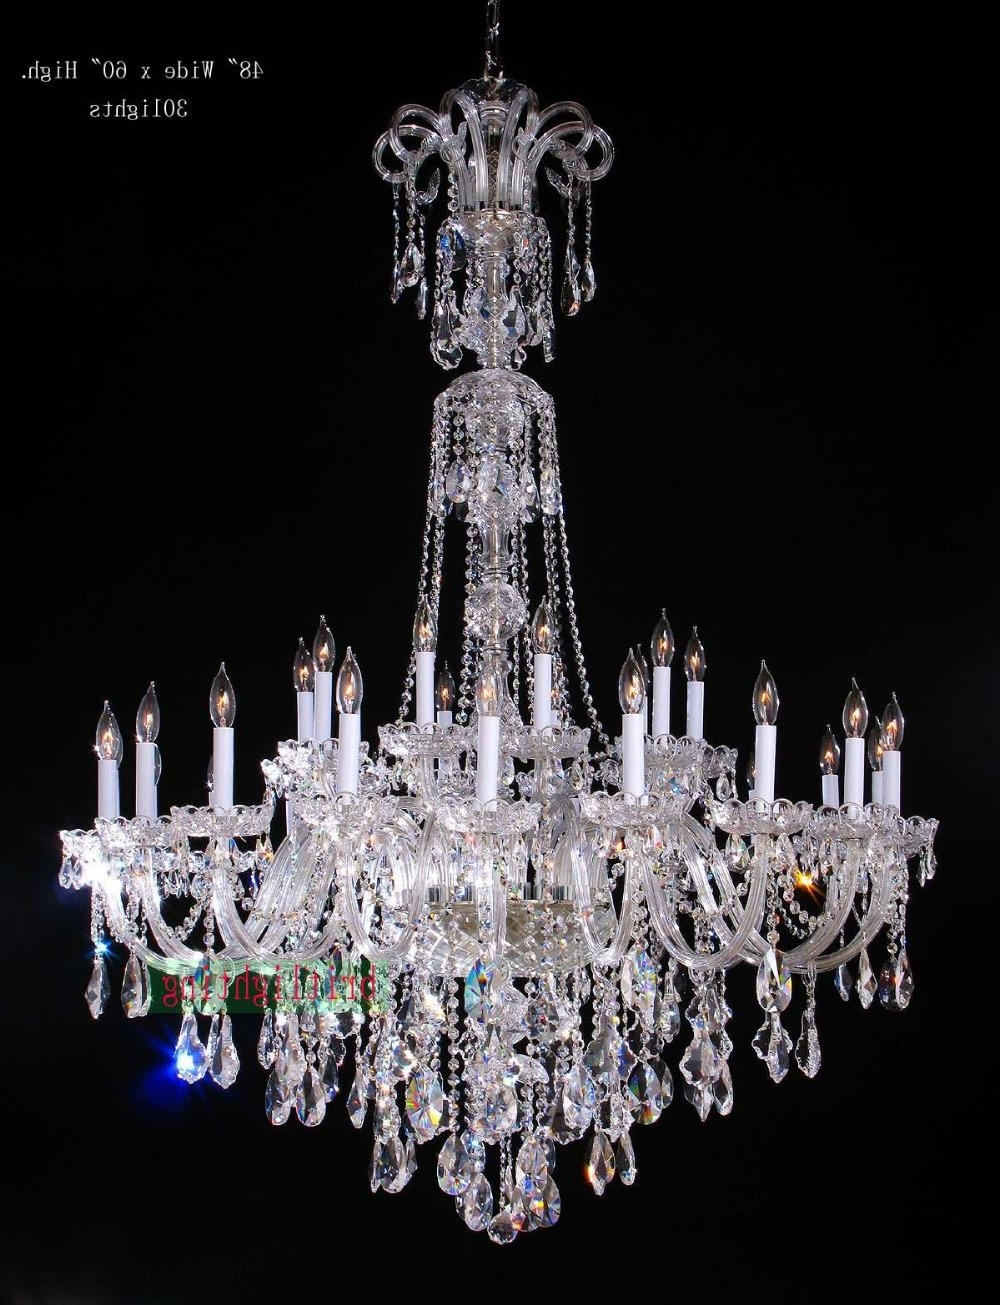 Most Popular Lamp Modern Crystal Chandeliers 5 Star Hotel Chandelier Led Crystal Inside Crystal Chandeliers (View 5 of 15)